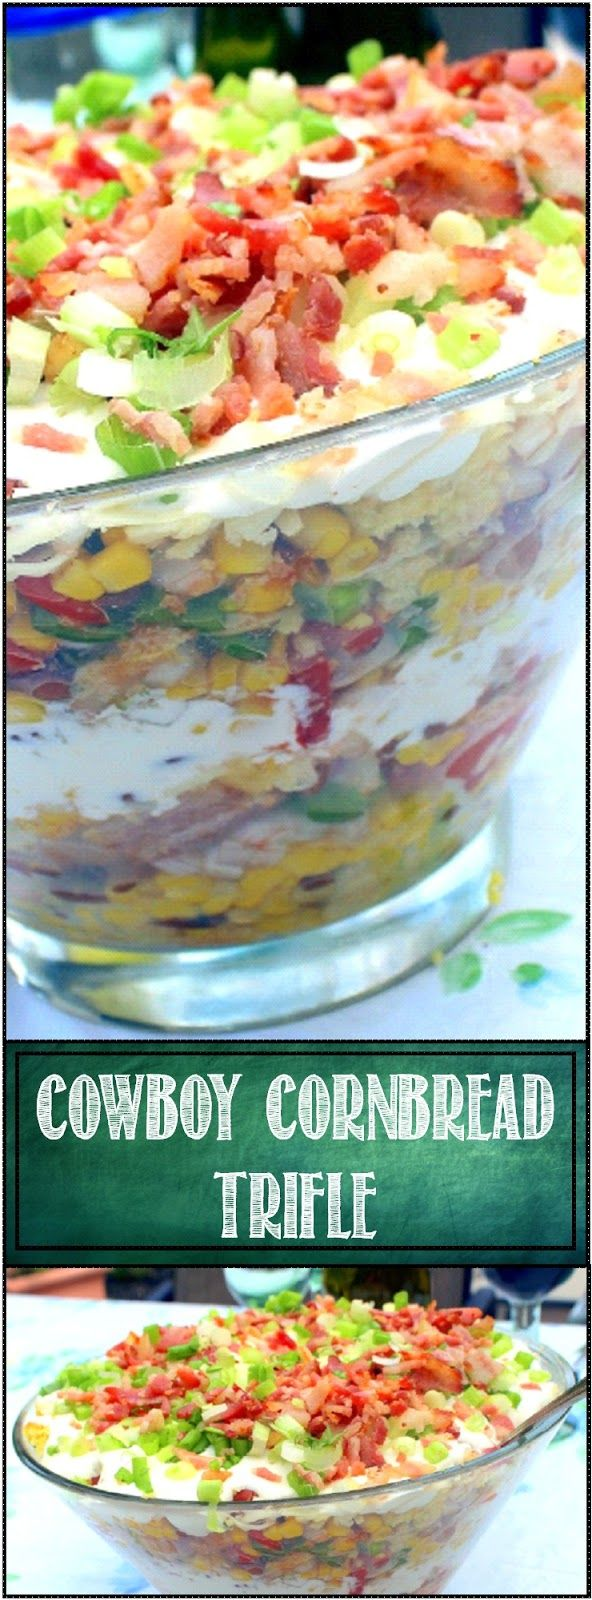 Cowboy Cornbread Trifle - A Savory BACON Side Dish! Such a Winner... A BEAUTIFUL PRESENTATION of layers of Ranch Seasoned Mayonnaise on top of Smoked Cheddar Cheese on top of a Cowboy Salsa of beans, tomatoes, onions and more... PLUS BACON BACON BACON! This one got Ooohs and Aaahs and was GOBBLED UP!  Cowboy Cornbread Trifle... YUM!